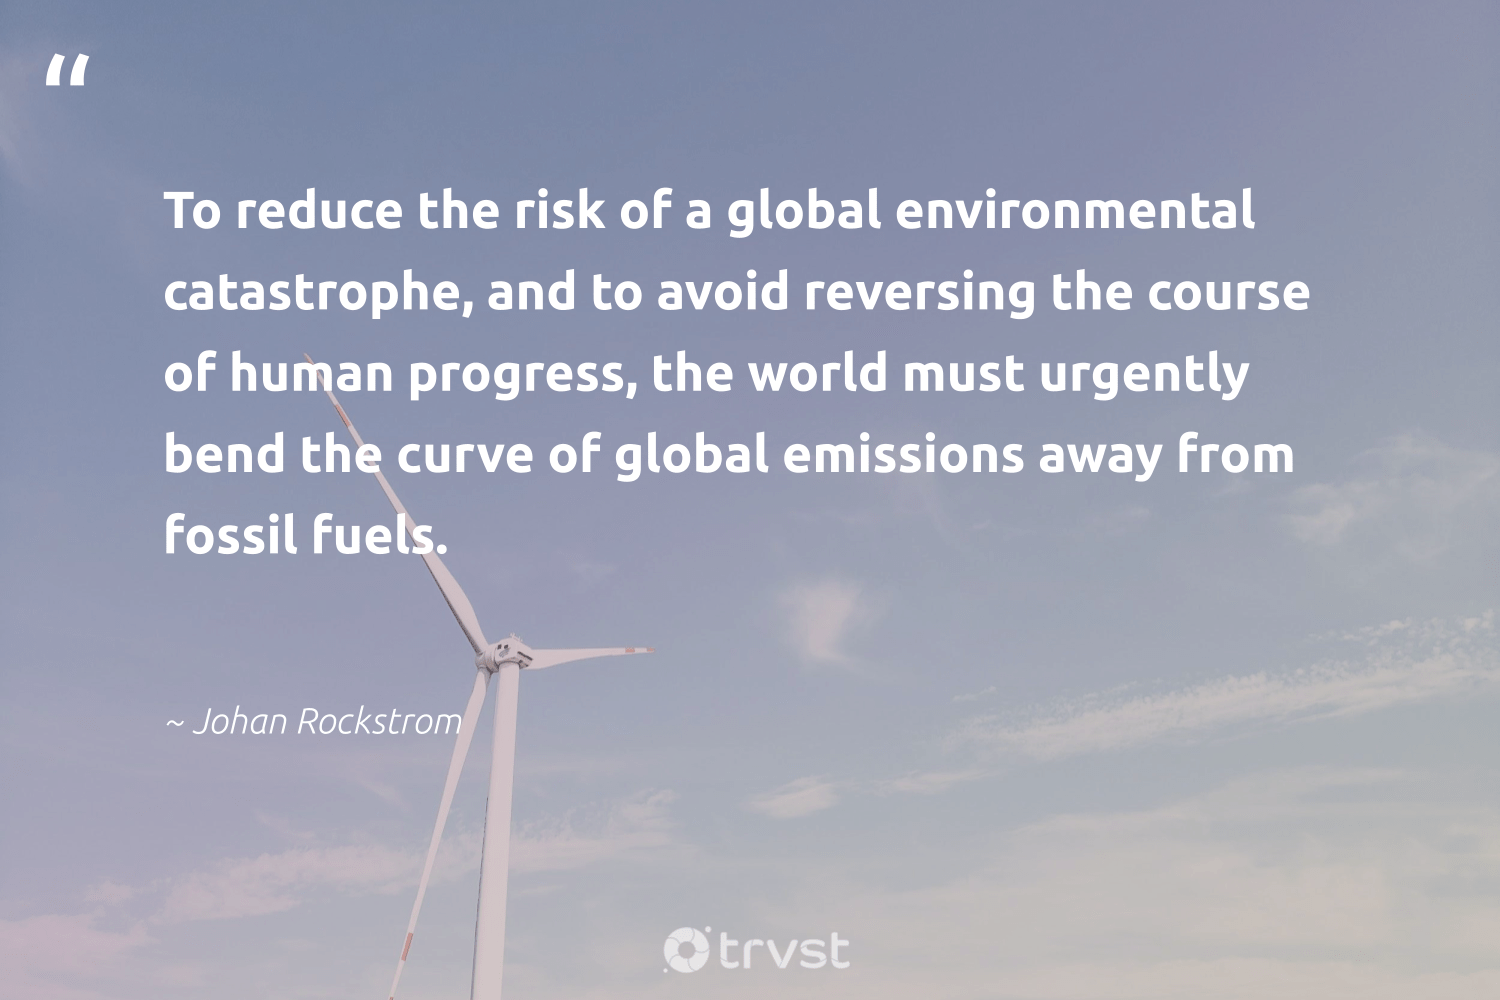 """""""To reduce the risk of a global environmental catastrophe, and to avoid reversing the course of human progress, the world must urgently bend the curve of global emissions away from fossil fuels.""""  - Johan Rockstrom #trvst #quotes #reduce #environmental #fossilfuels #fossil #refurbished #livegreen #saveourplanet #beinspired #refuse #sustainableliving"""